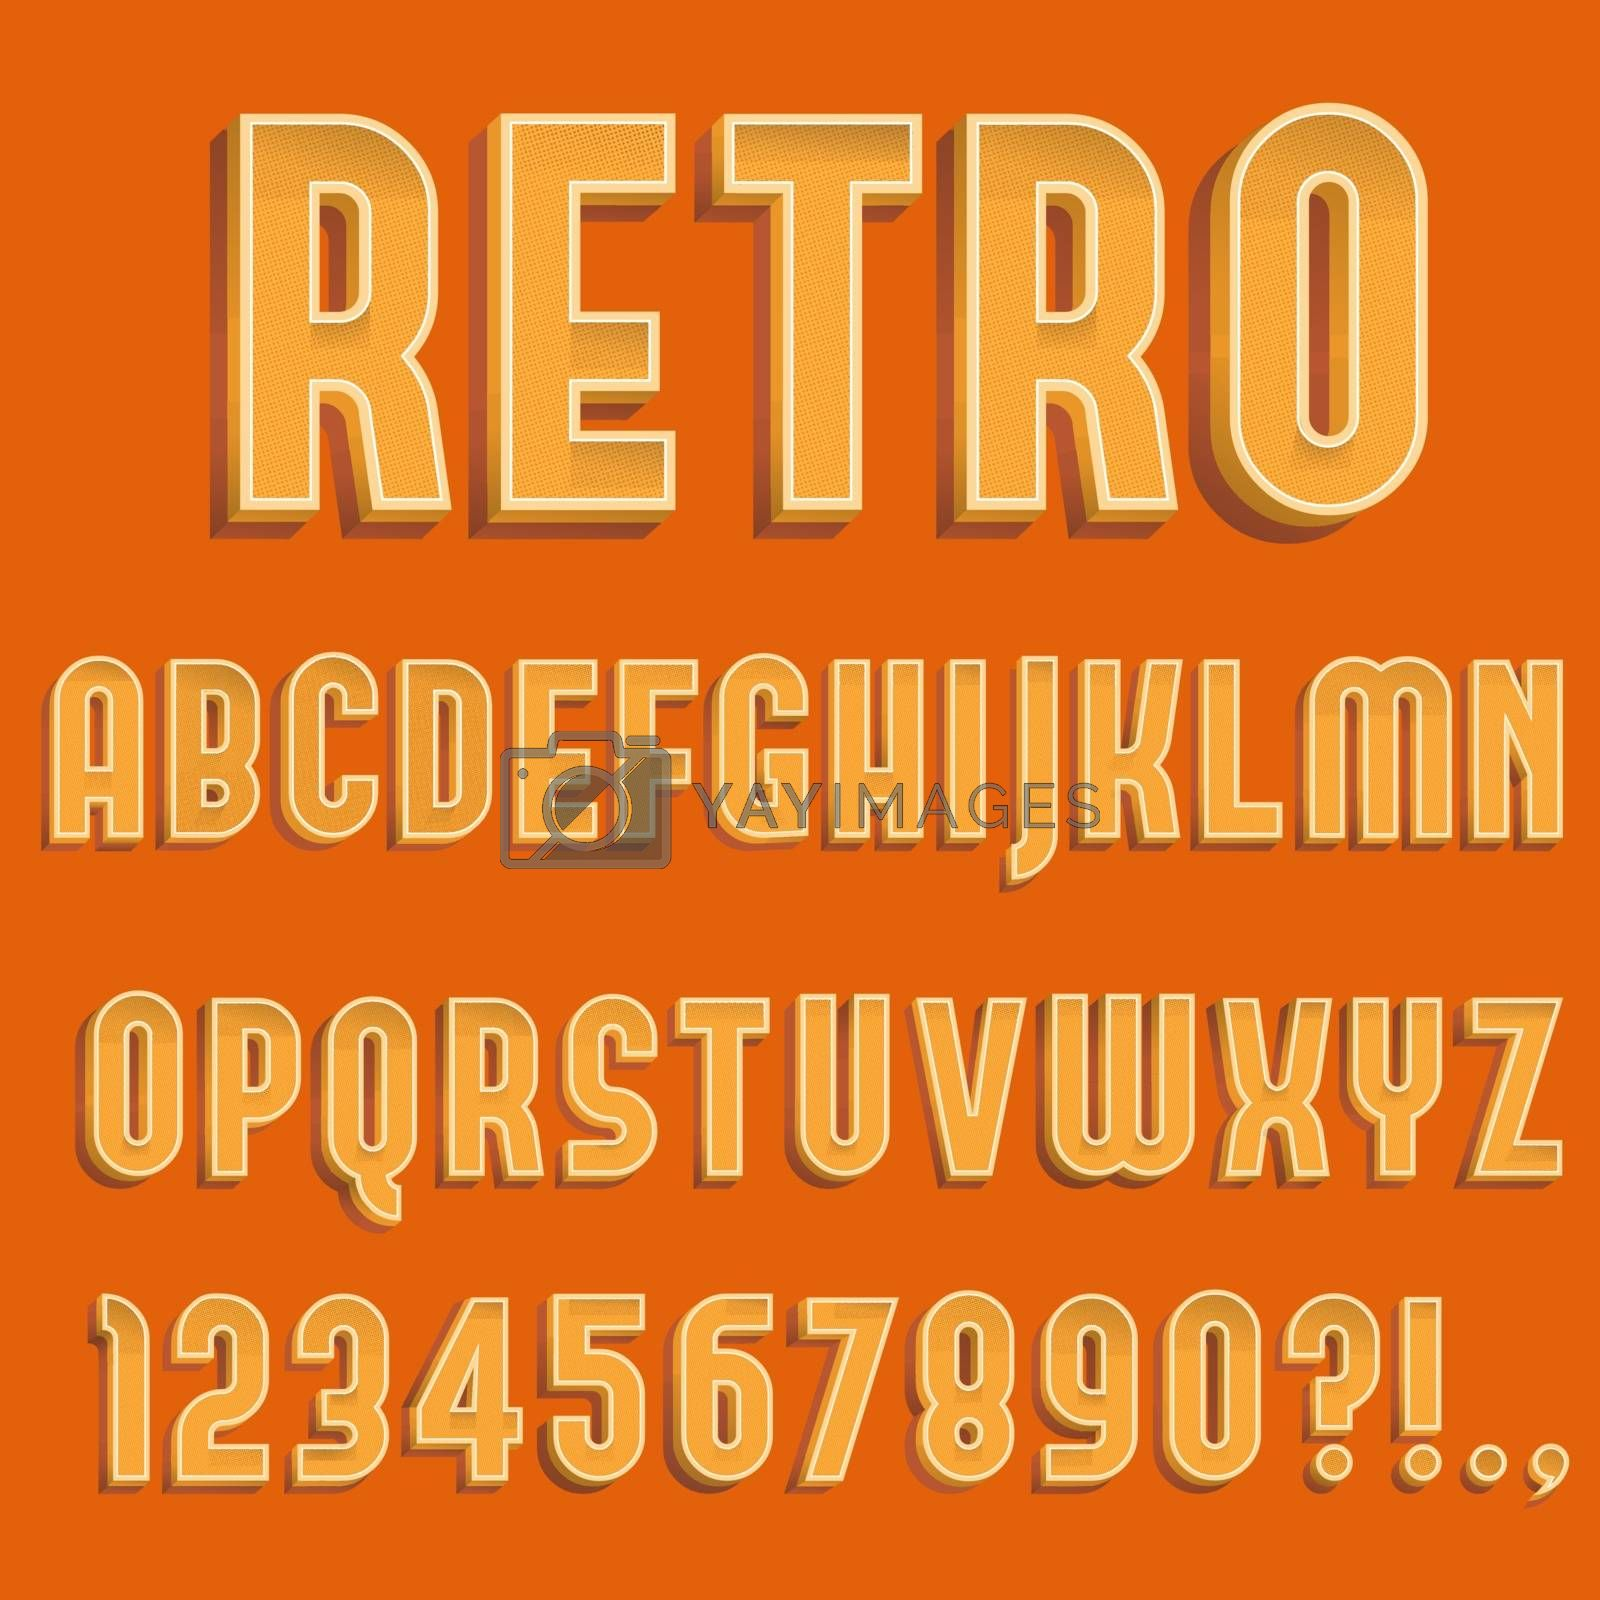 Retro 3D Alphabet Letters, Numbers and Symbols. Retro Typography with Rich Colors. Vector